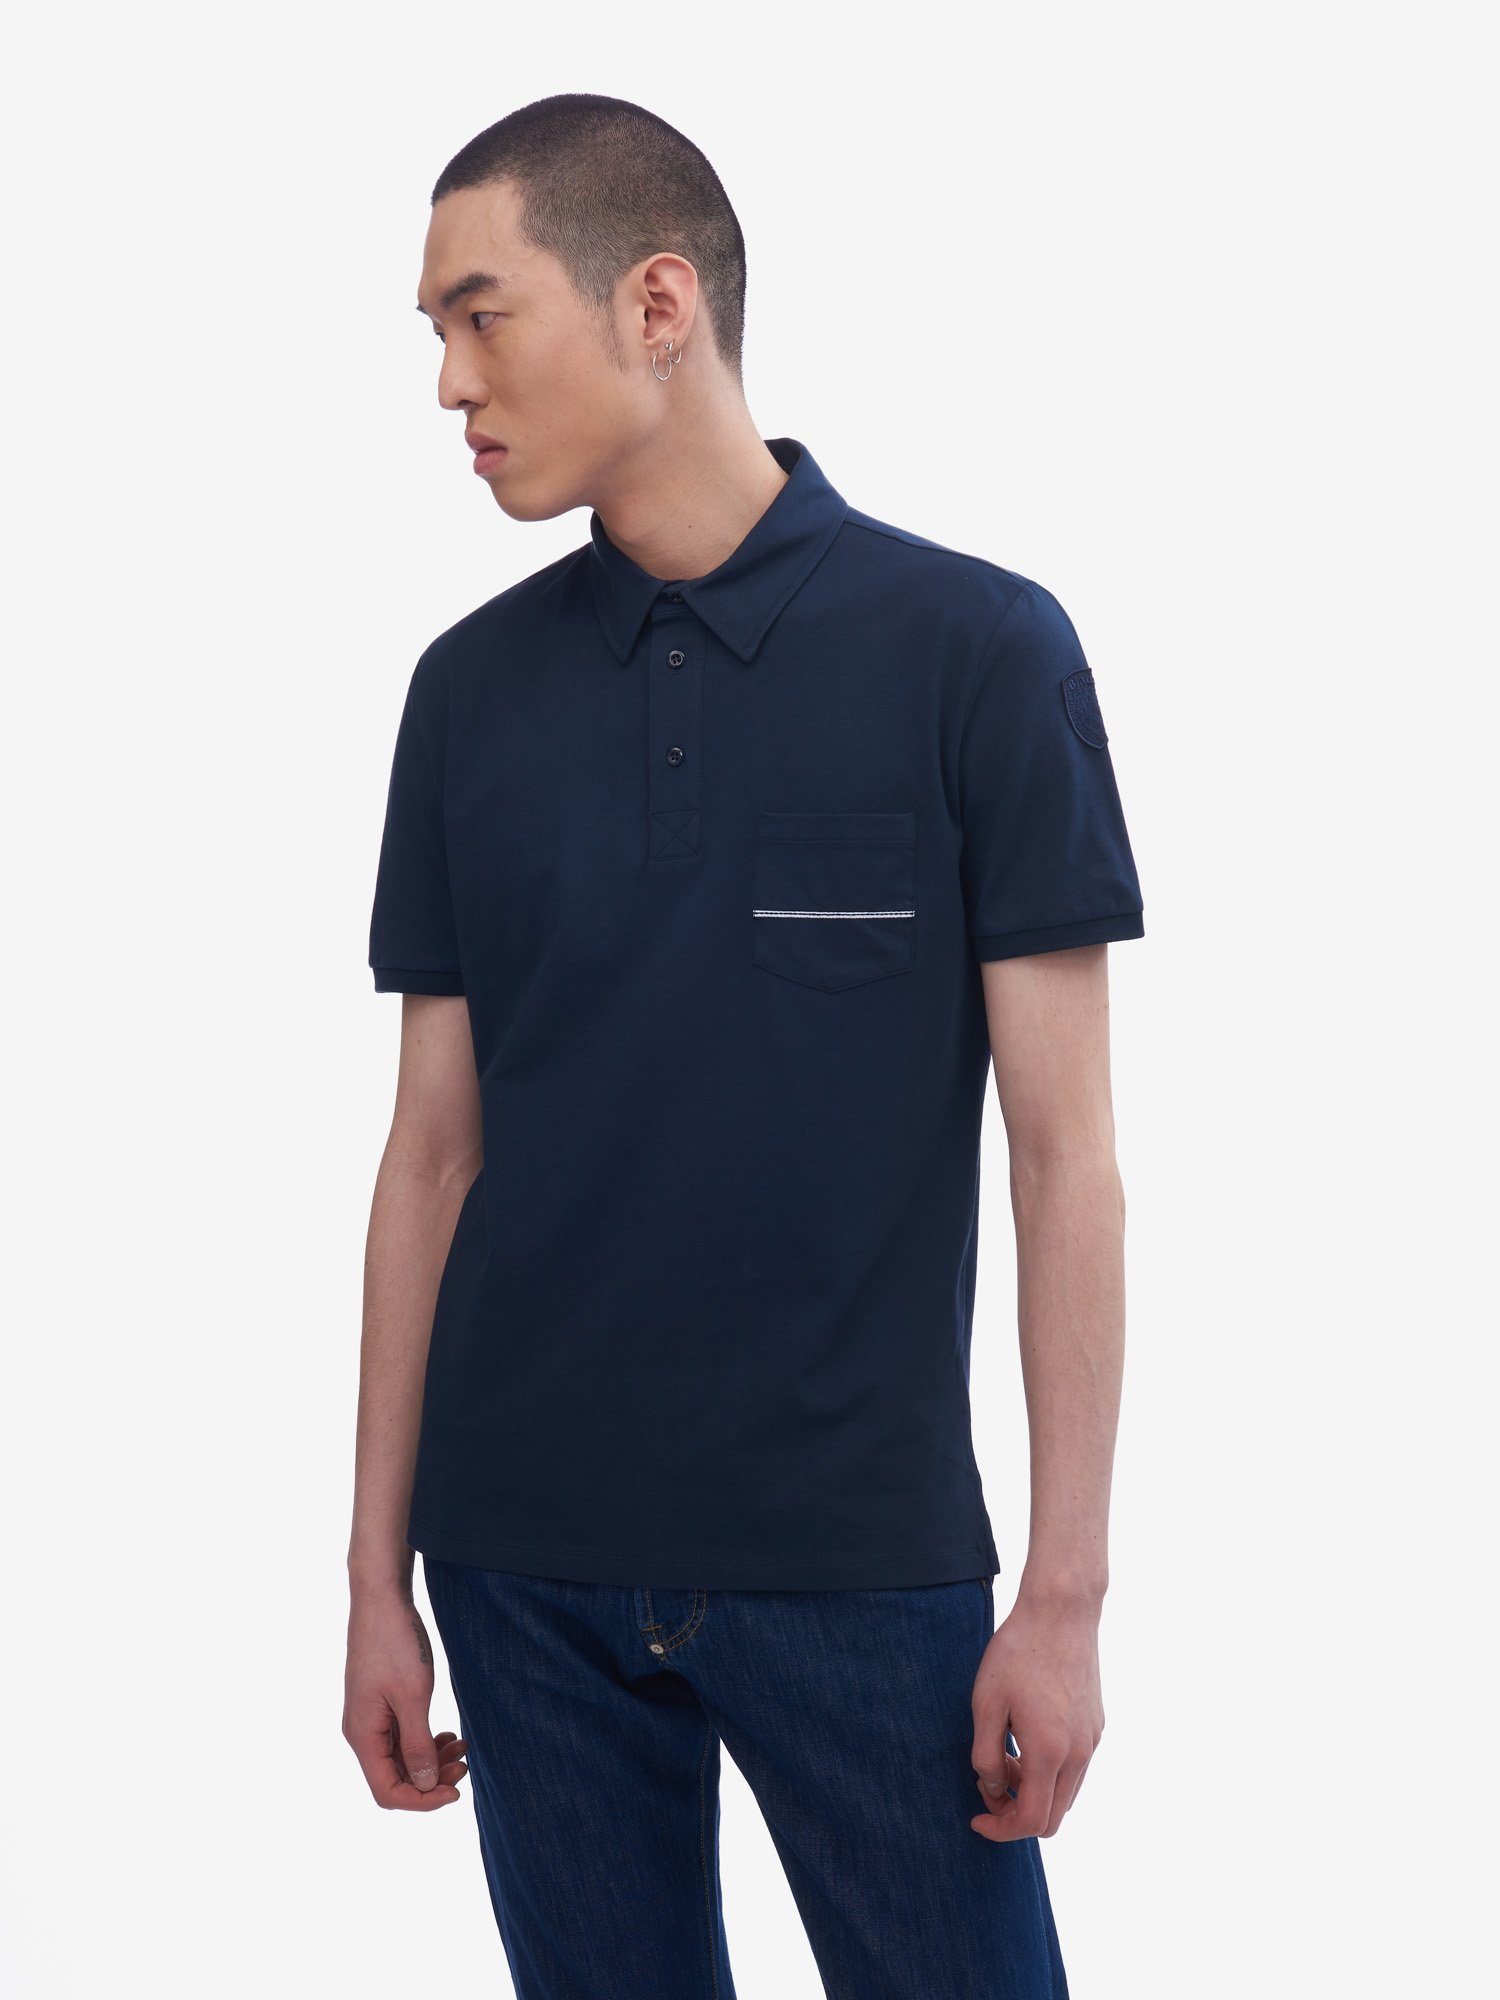 SOFT TOUCH POLO SHIRT - Blauer